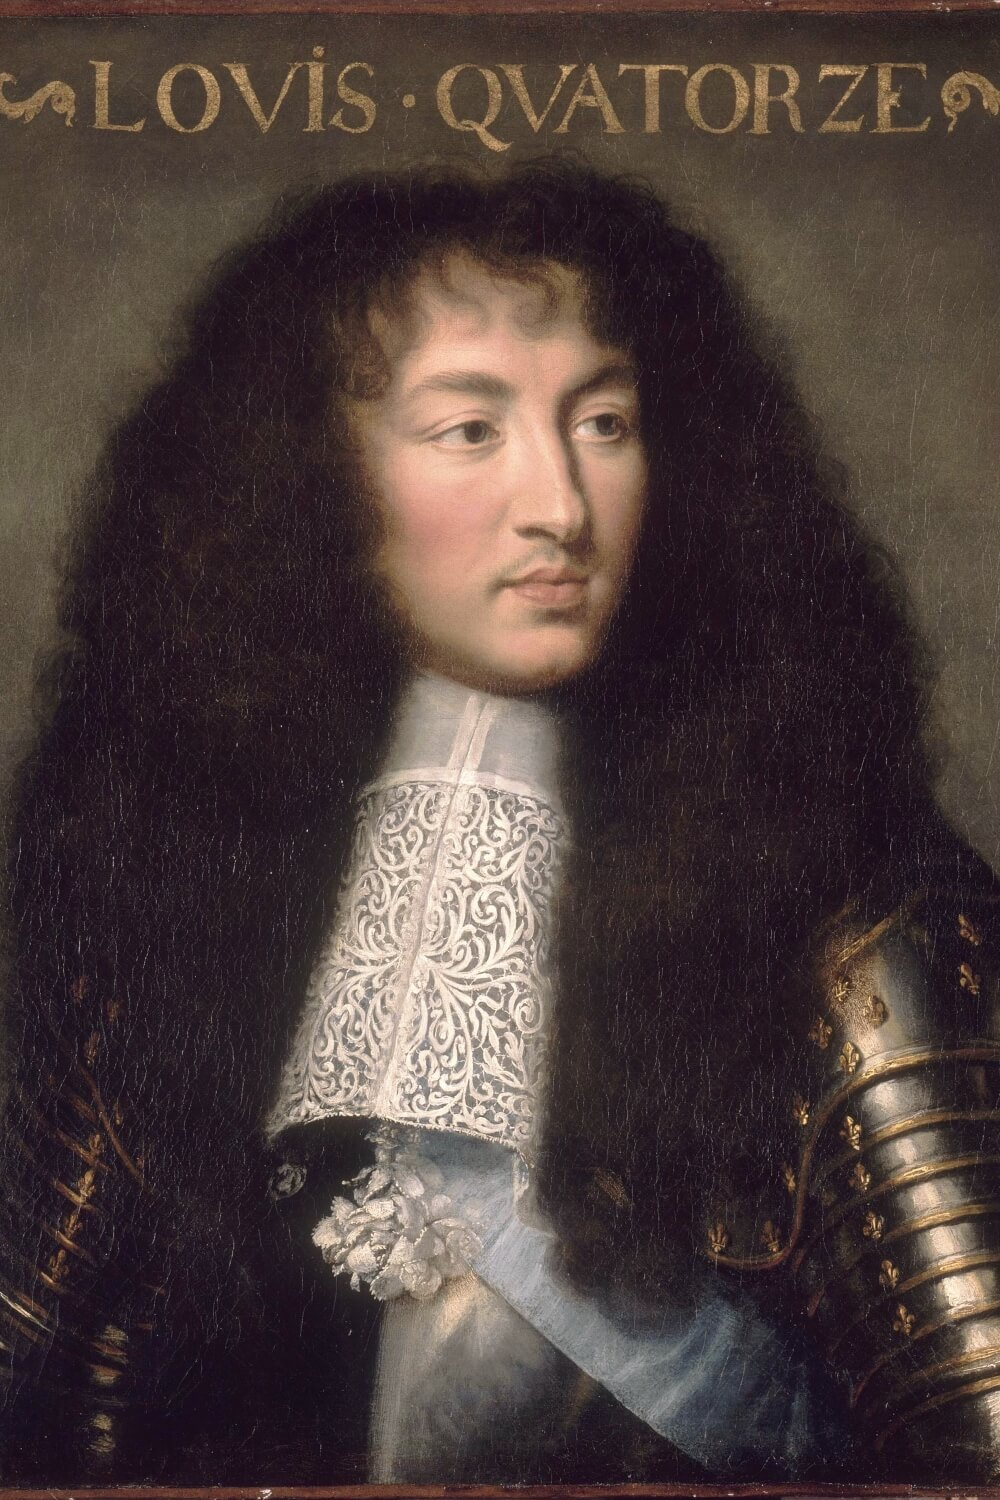 King Louis XIV at age 23, by Charles Le Brun (circa 1661-1662)